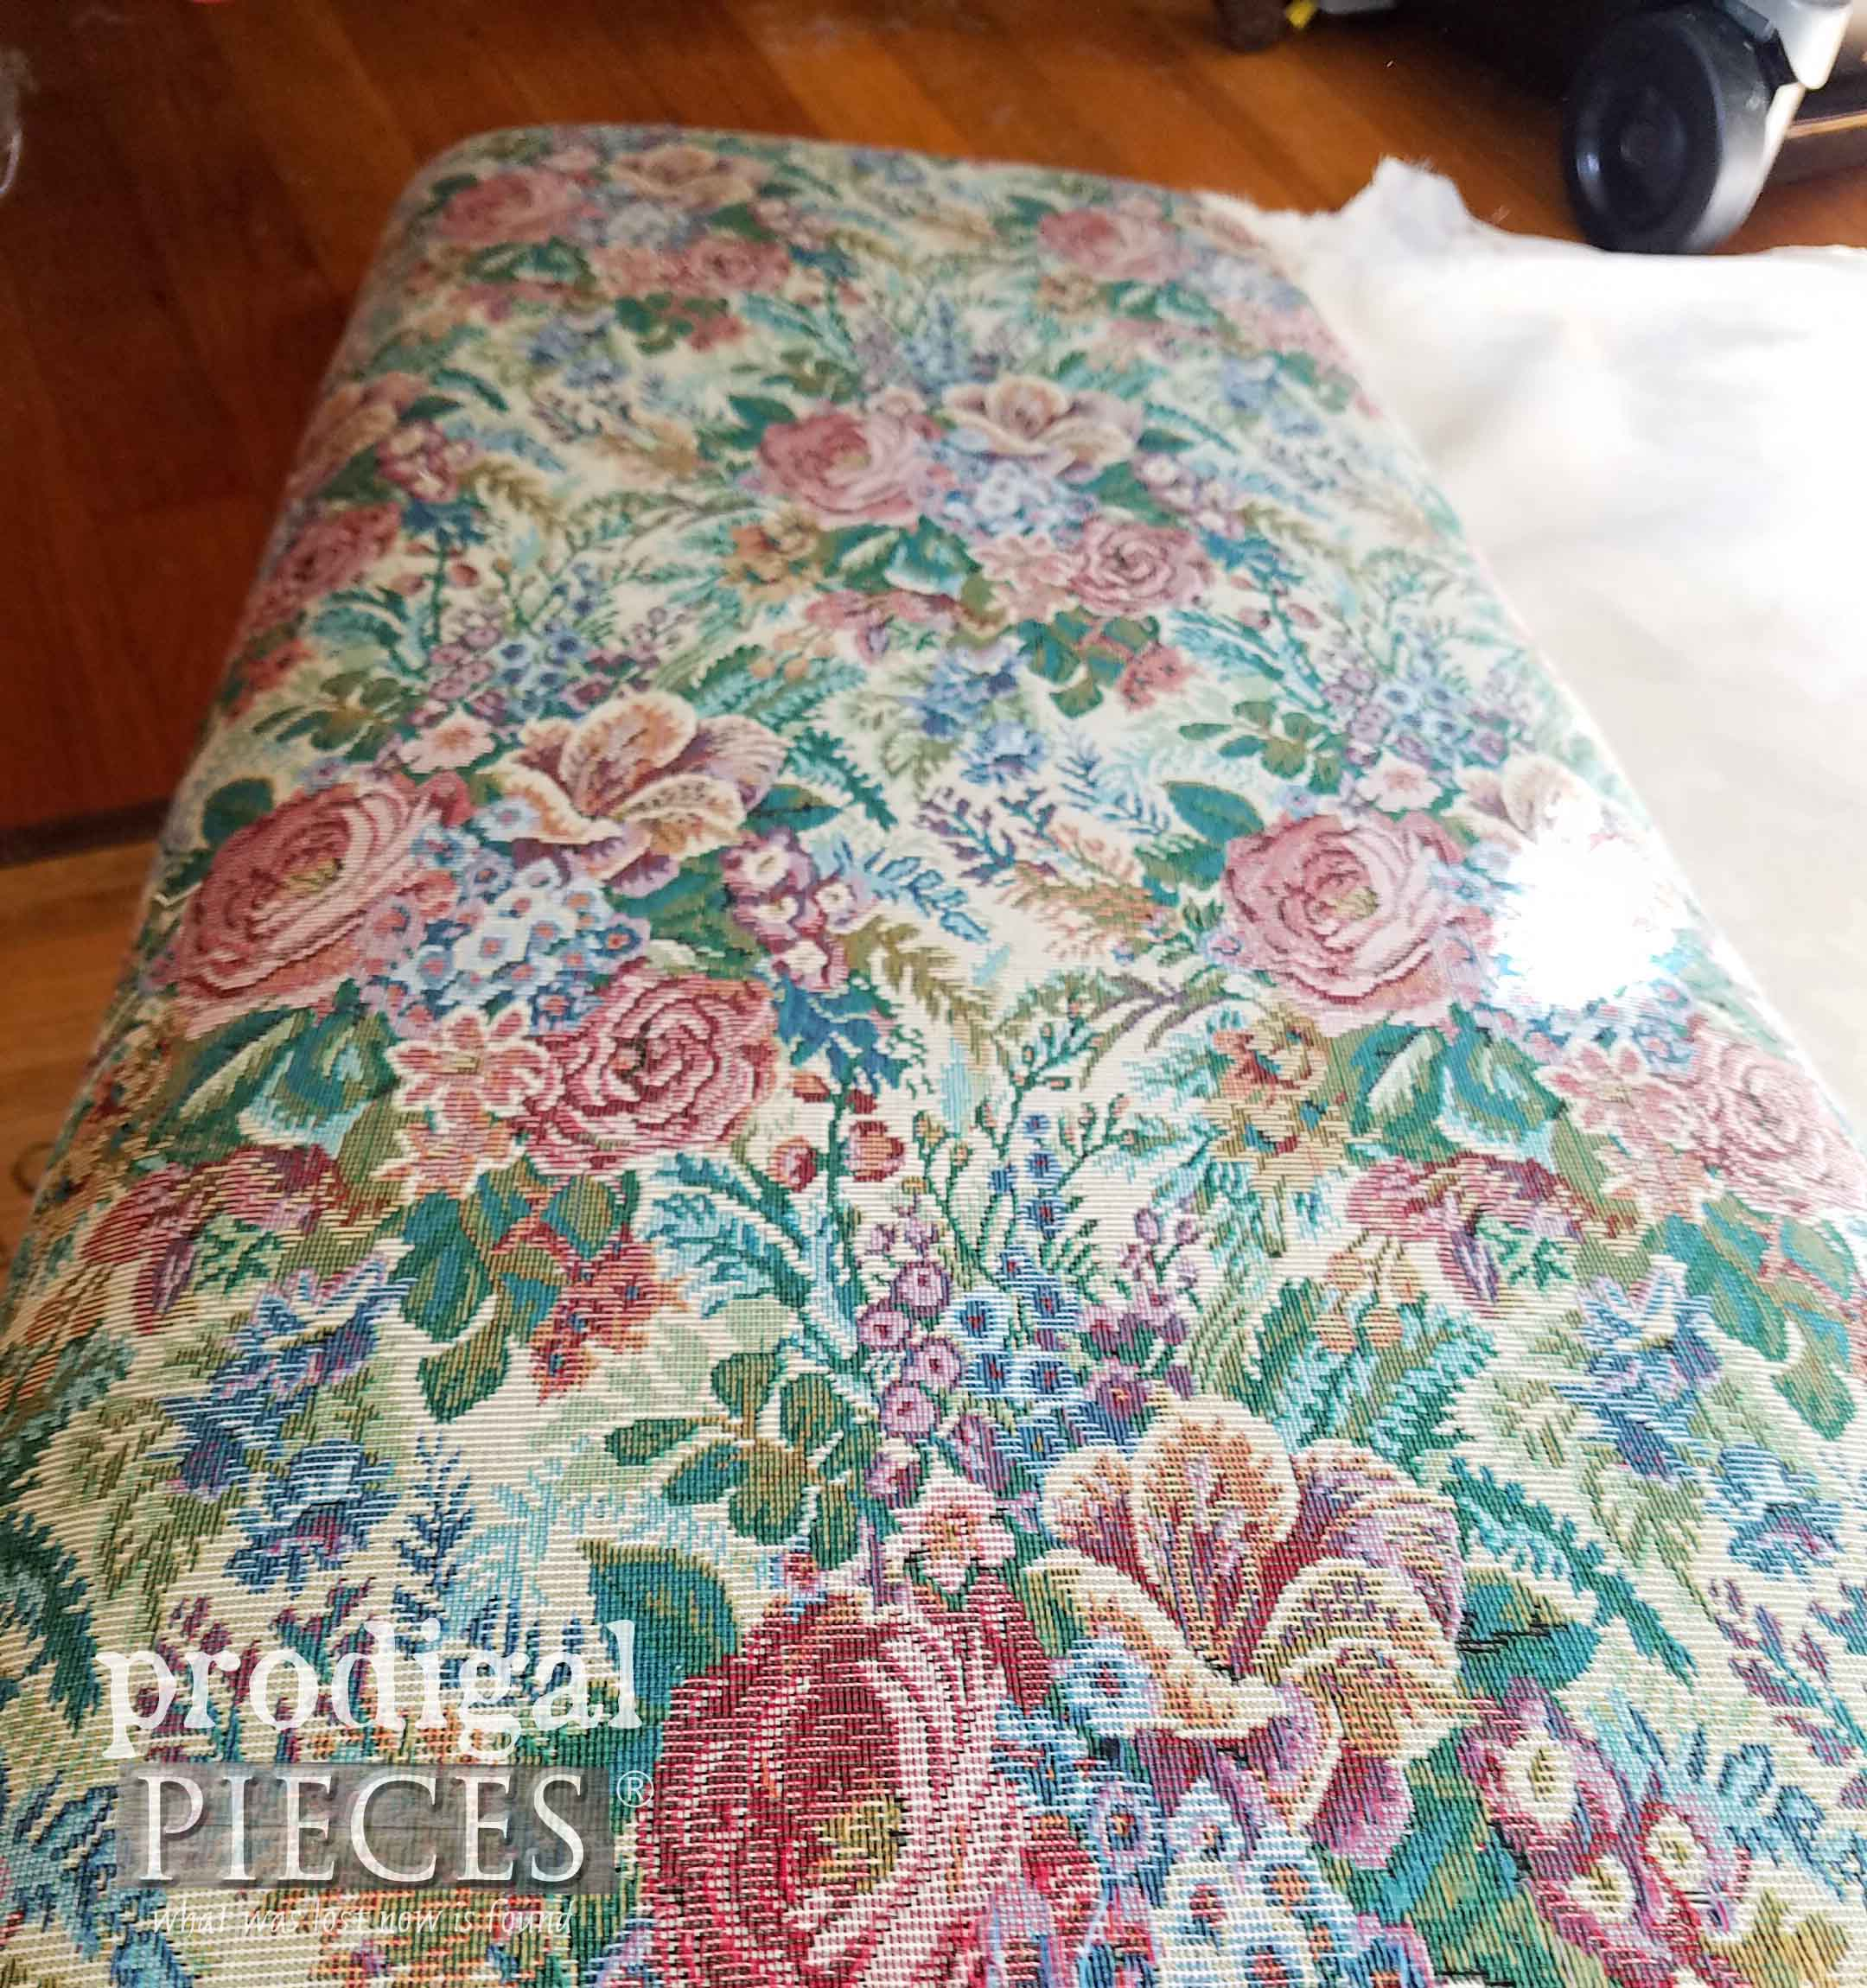 Original Vintage Tapestry Fabric on Bench | prodigalpieces.com